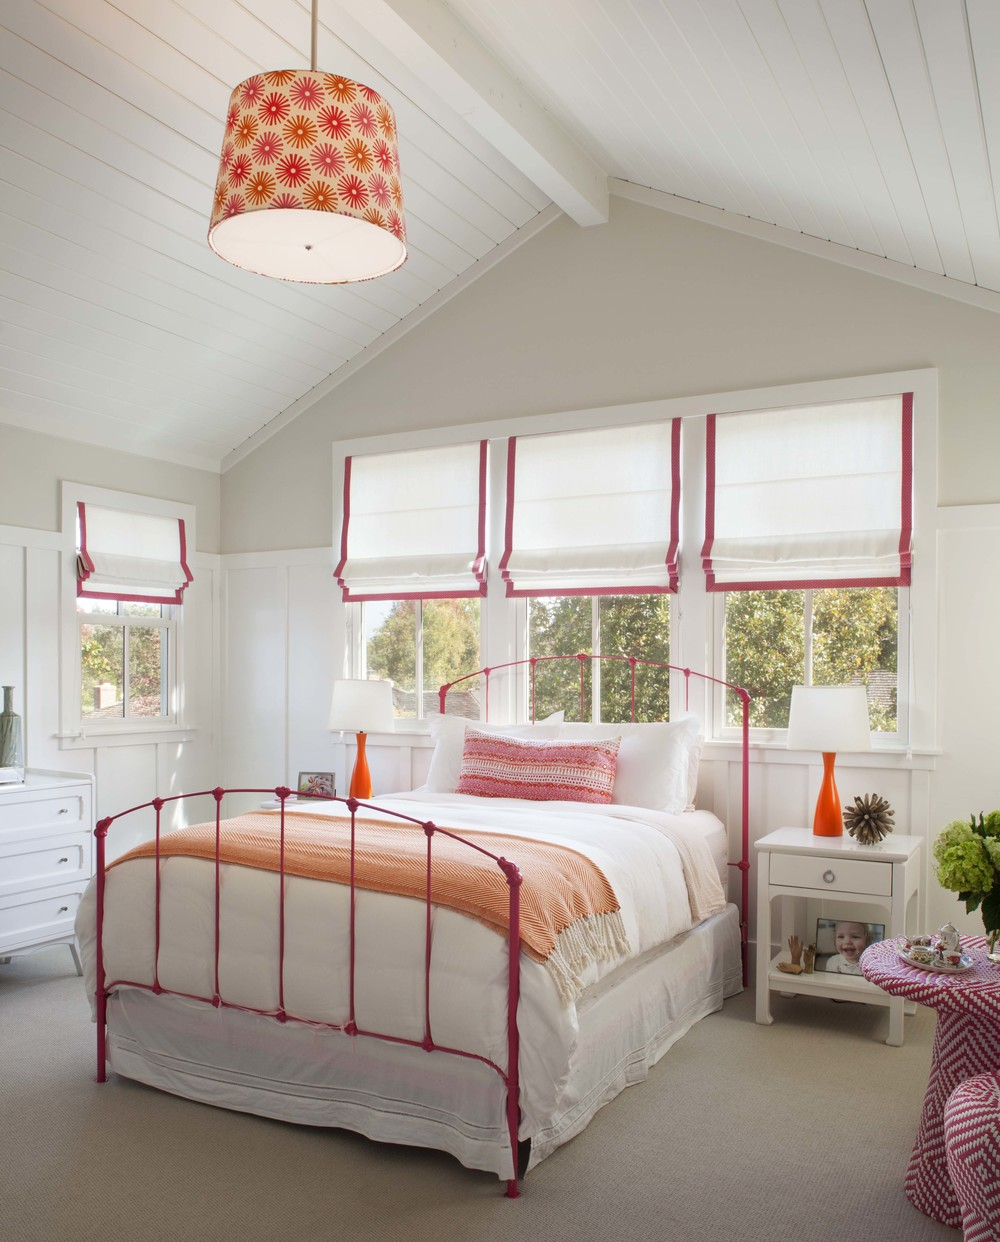 Modern Farmhouse: Girl's bedroom